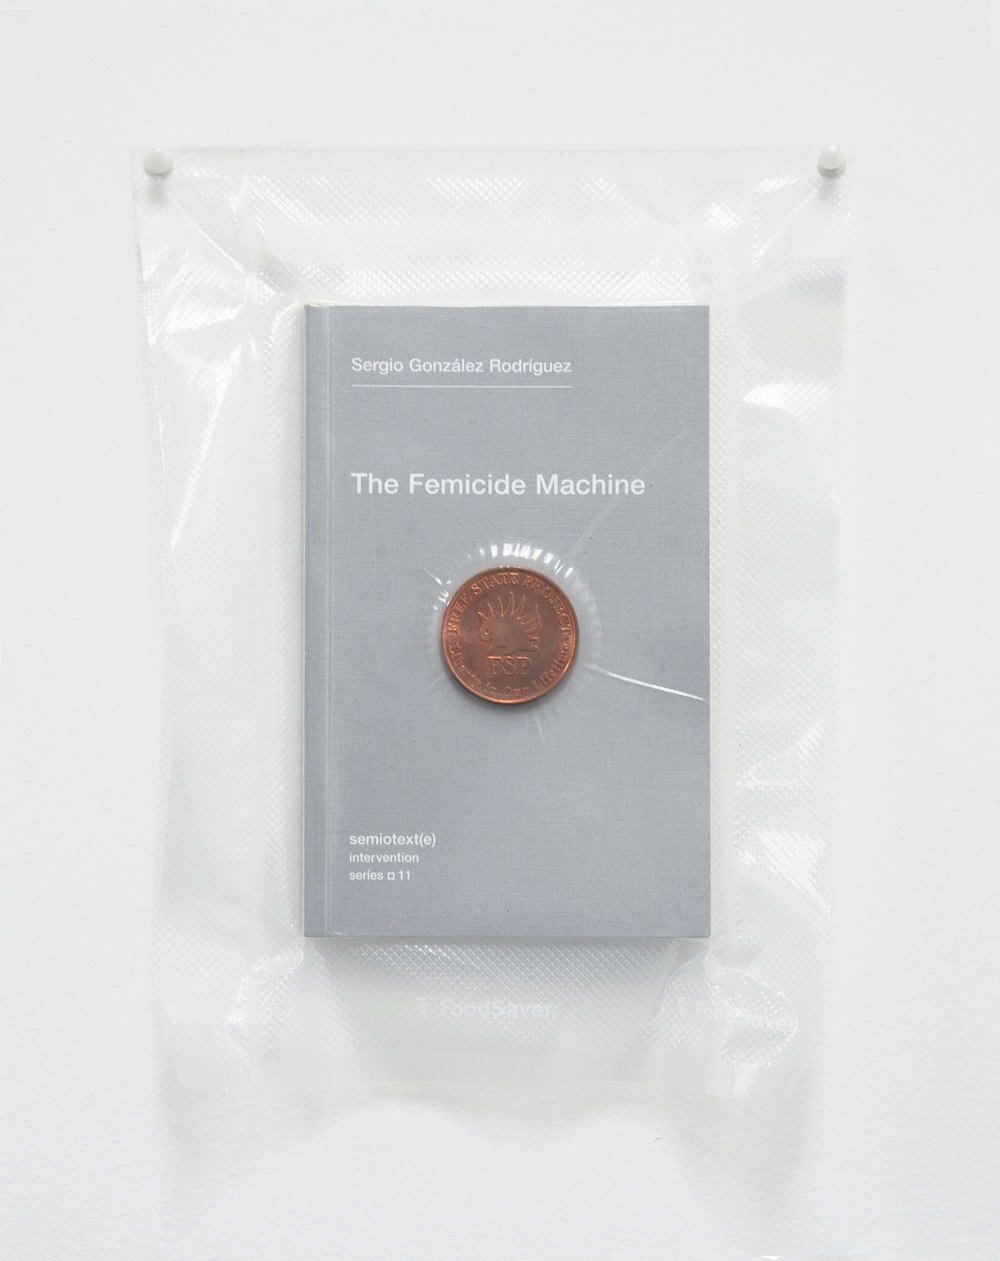 Brad Troemel   TSA No Fly List Vacuum Sealed Sergio Gonzalez Rodriguez -'The Femicide Machine' with AOCS Solid Copper Free State Project Porcupine Coin.   2013   10 x 8 inches